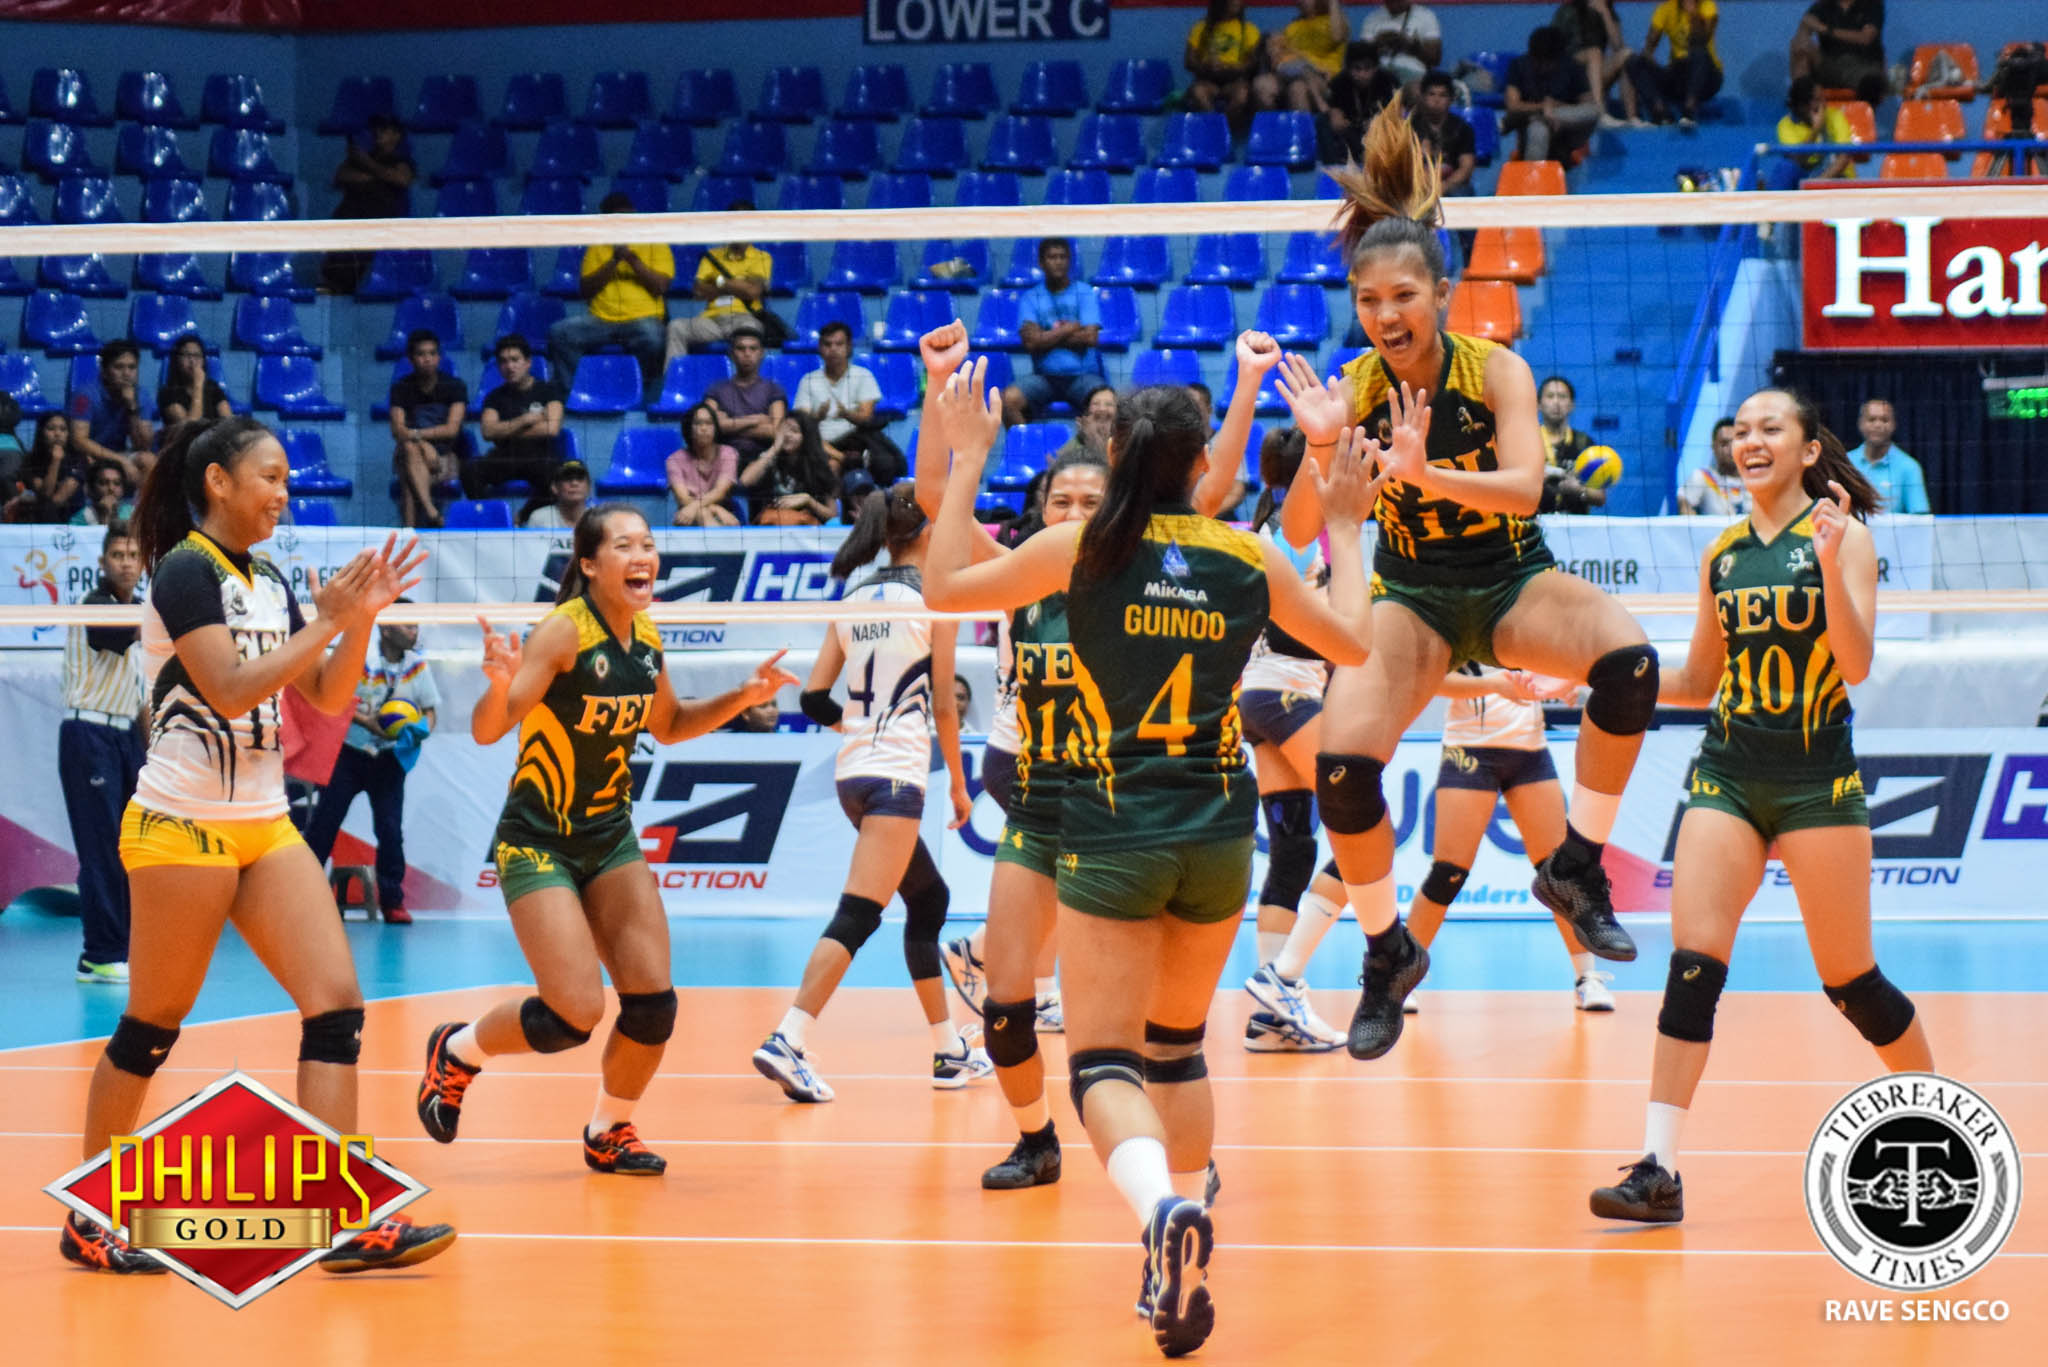 Tiebreaker Times Lady Tamaraws seal Final Four seat with win over Lady Pirates News PVL Volleyball  Toni Basas Ria Duremdes Lyceum Women's Volleyball Jerrili Malabanan George Pascua FEU Women's Volleyball Emil Lontoc Christine Miralles Angelica Cayuna 2017 PVL Women's Colelgiate Conference 2017 PVL Season